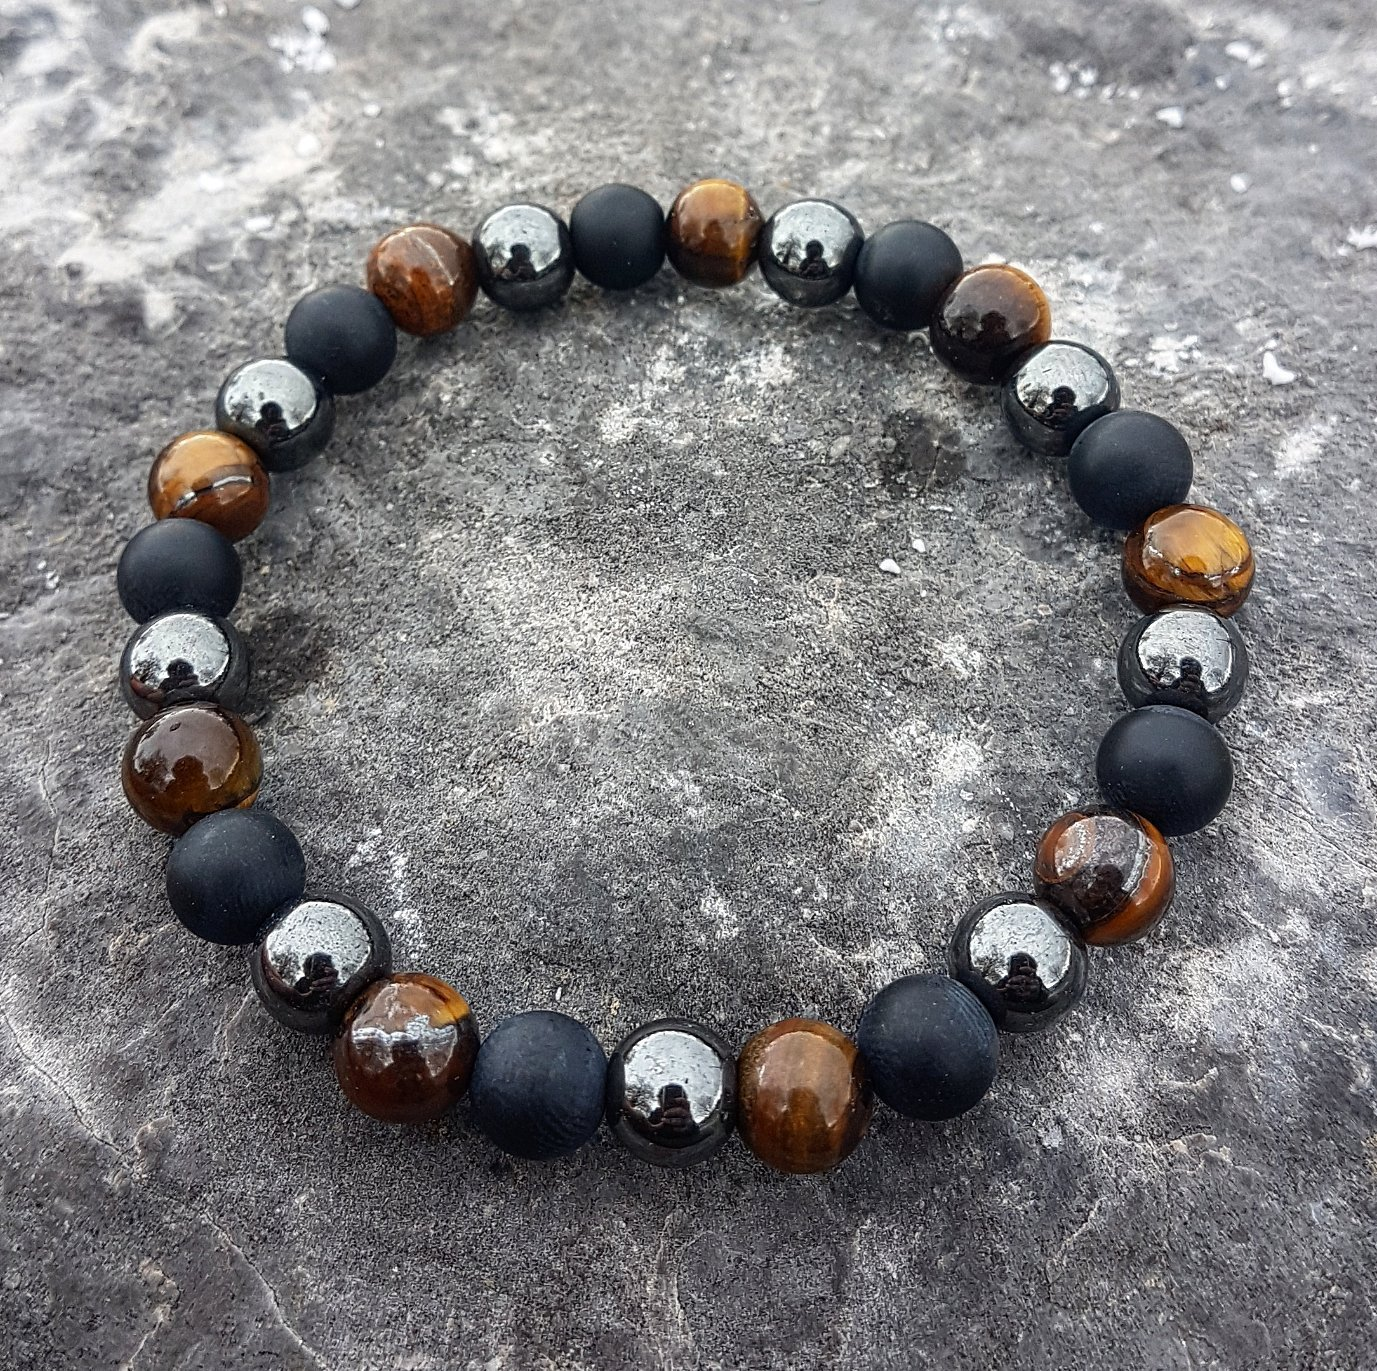 I am protected - Handmade natural semi-precious healing gemstones crystals stretch bracelet made of black onyx, hematite and tiger's eye 8mm beads men women unisex